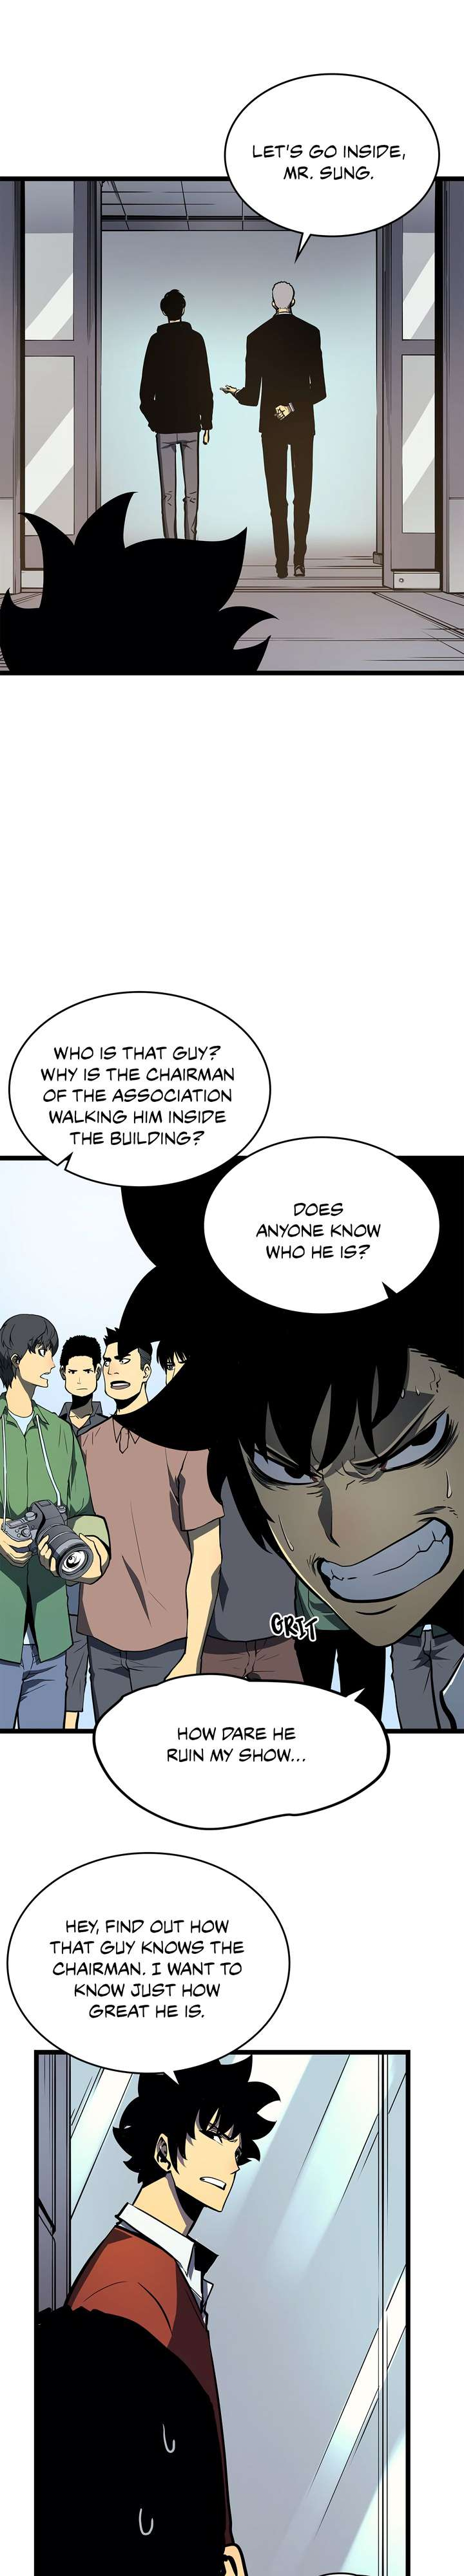 Solo Leveling Chapter 77 Page 5